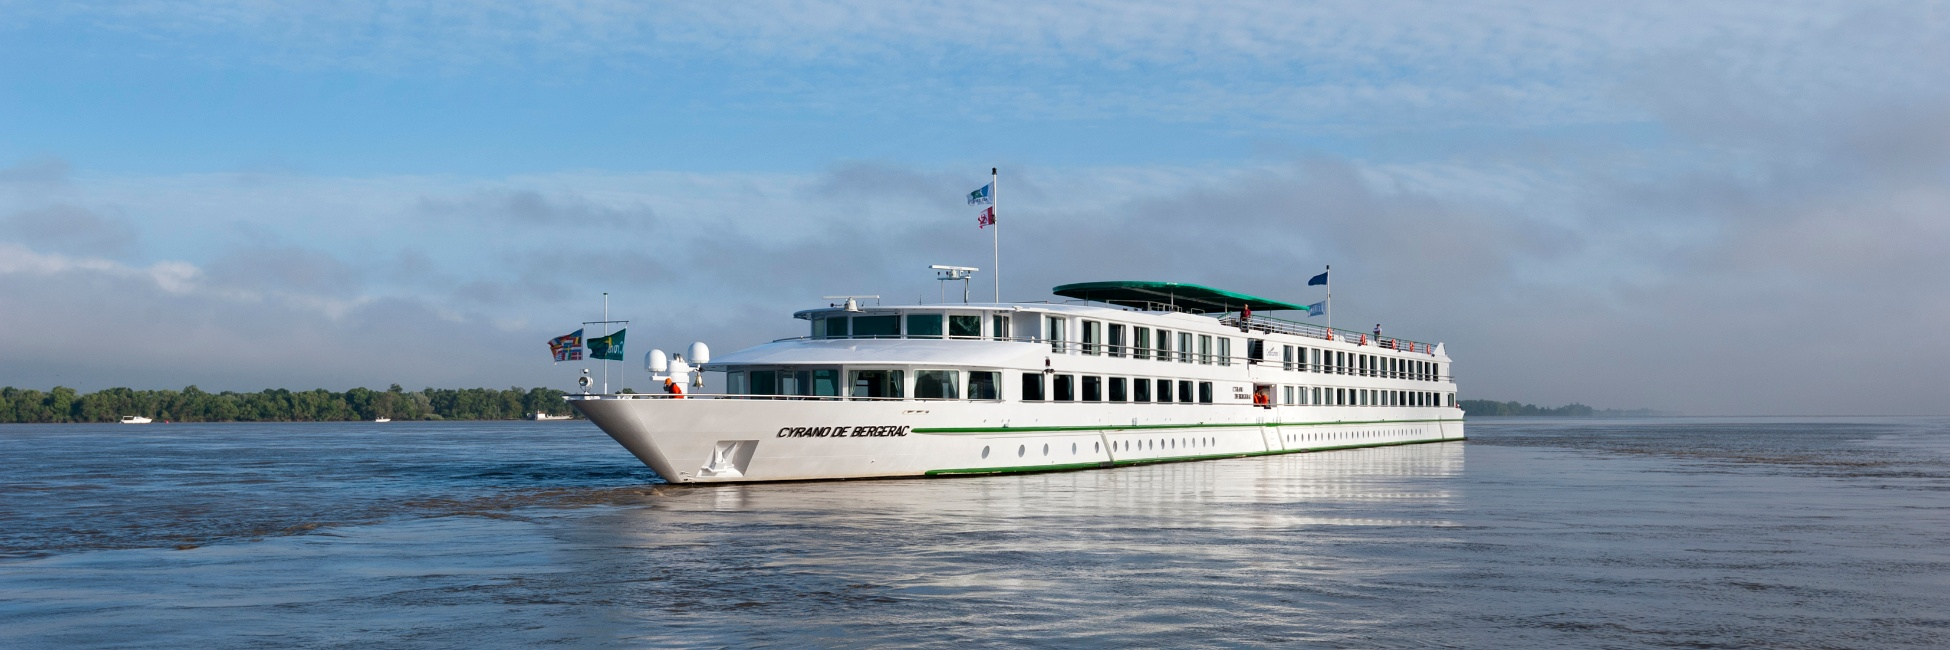 Discover Europe on comfortable river boats | CroisiEurope Cruises